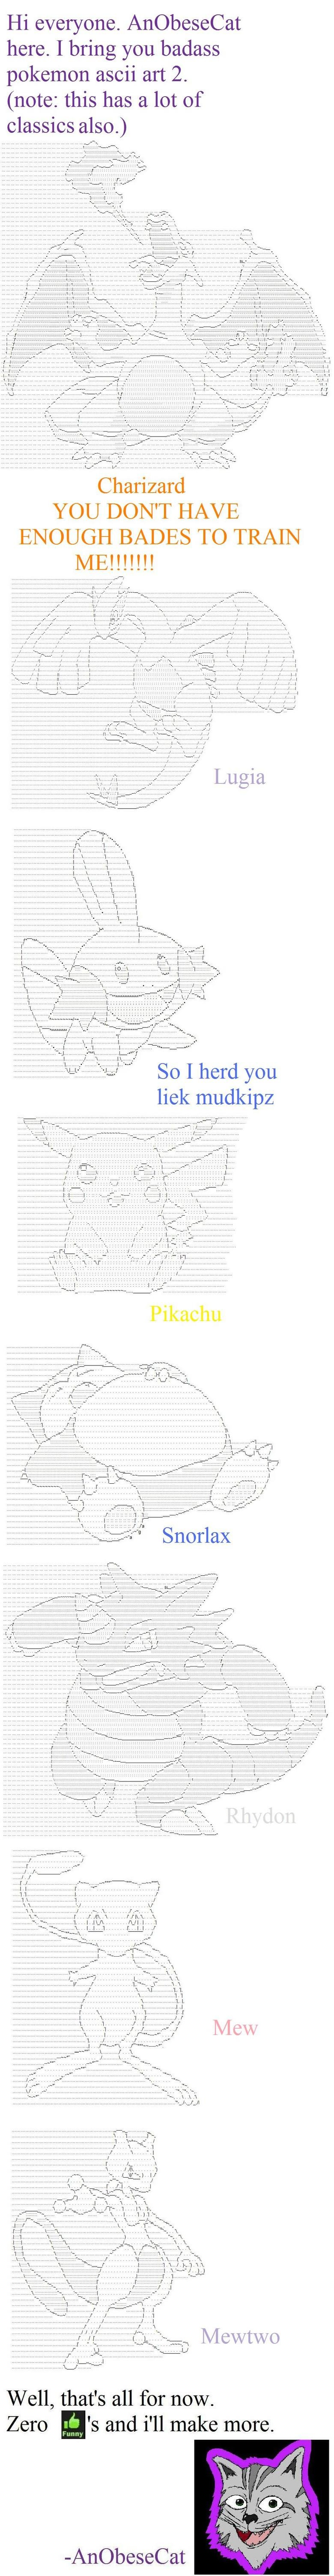 "Badass pokemon ASCII art part 2. part one vvvv<br /> <a href=""pictures/482215/Badass+pokemon+ASCII+art/"" target=blank>funnyjunk.com/funny_"